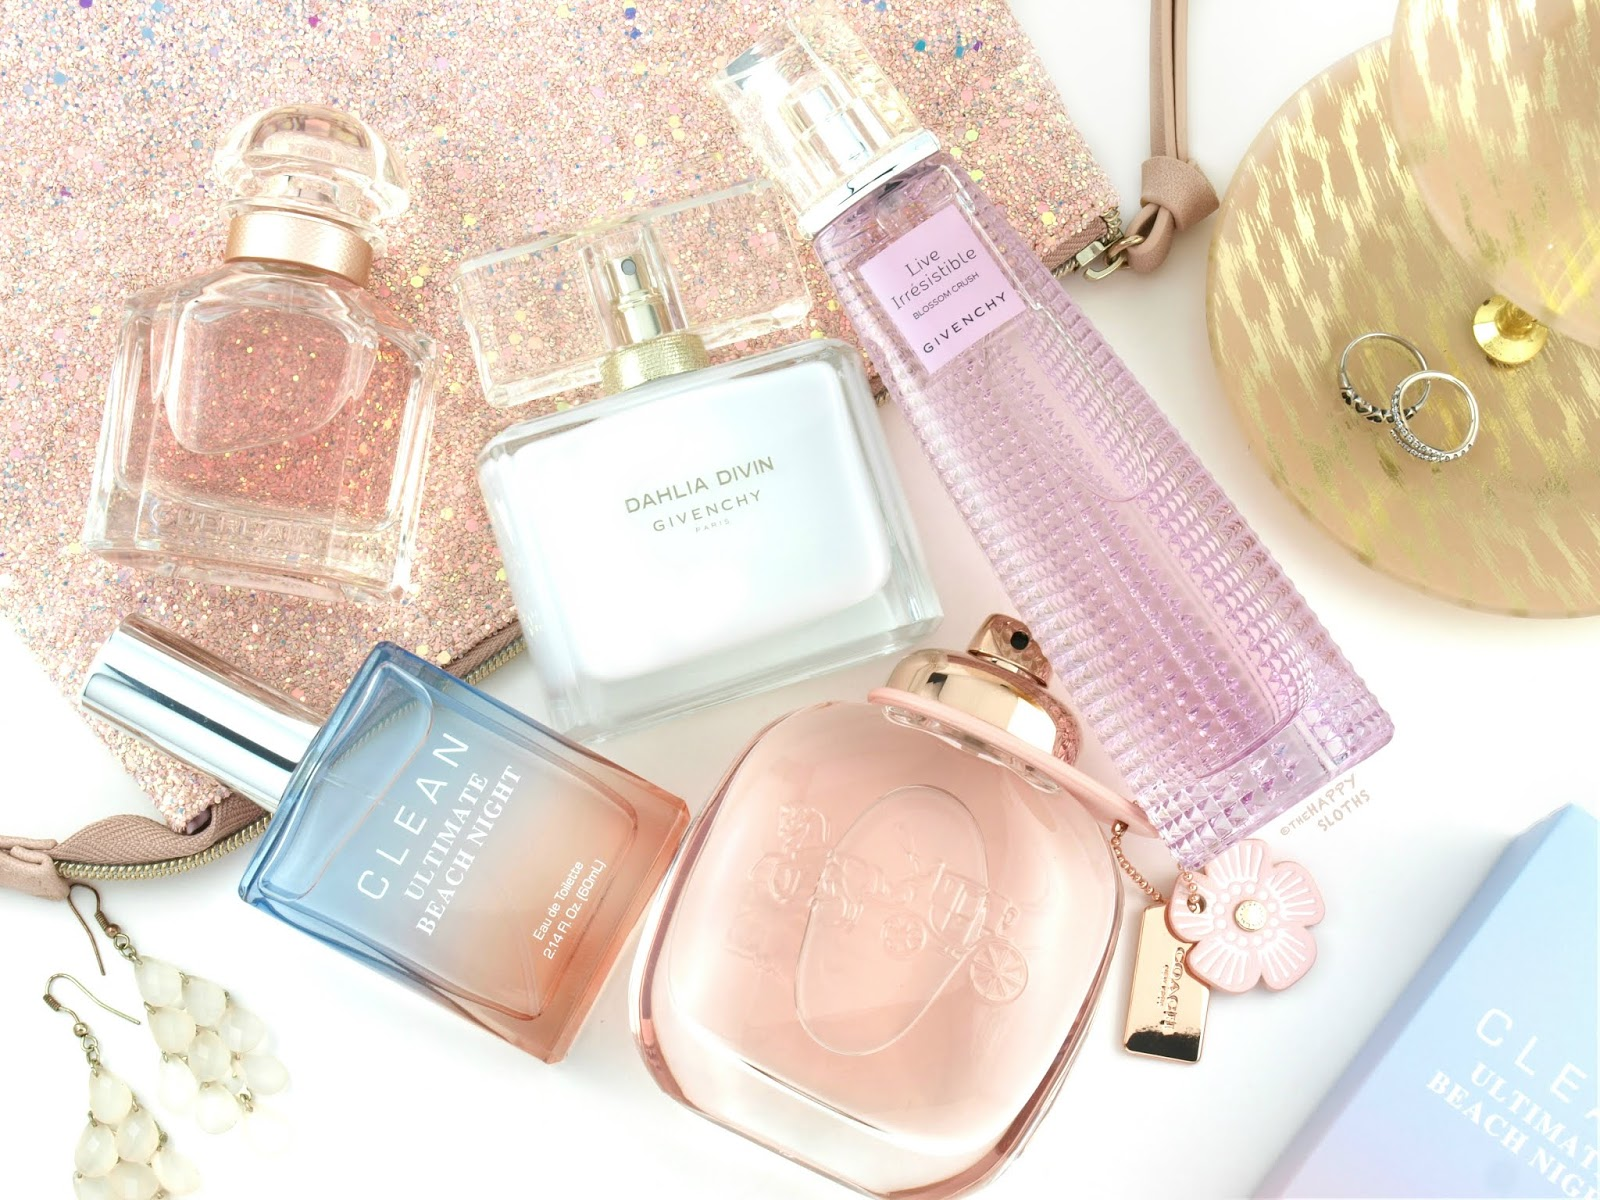 Spring & Summer 2018 Fragrance Reviews: Mon Guerlain Florale, Givenchy Dahlia Divin Eau Initiale, Givenchy Live Irresistible Blossom Crush, Clean Ultimate Beach Night,  Coach Floral Eau de Parfum